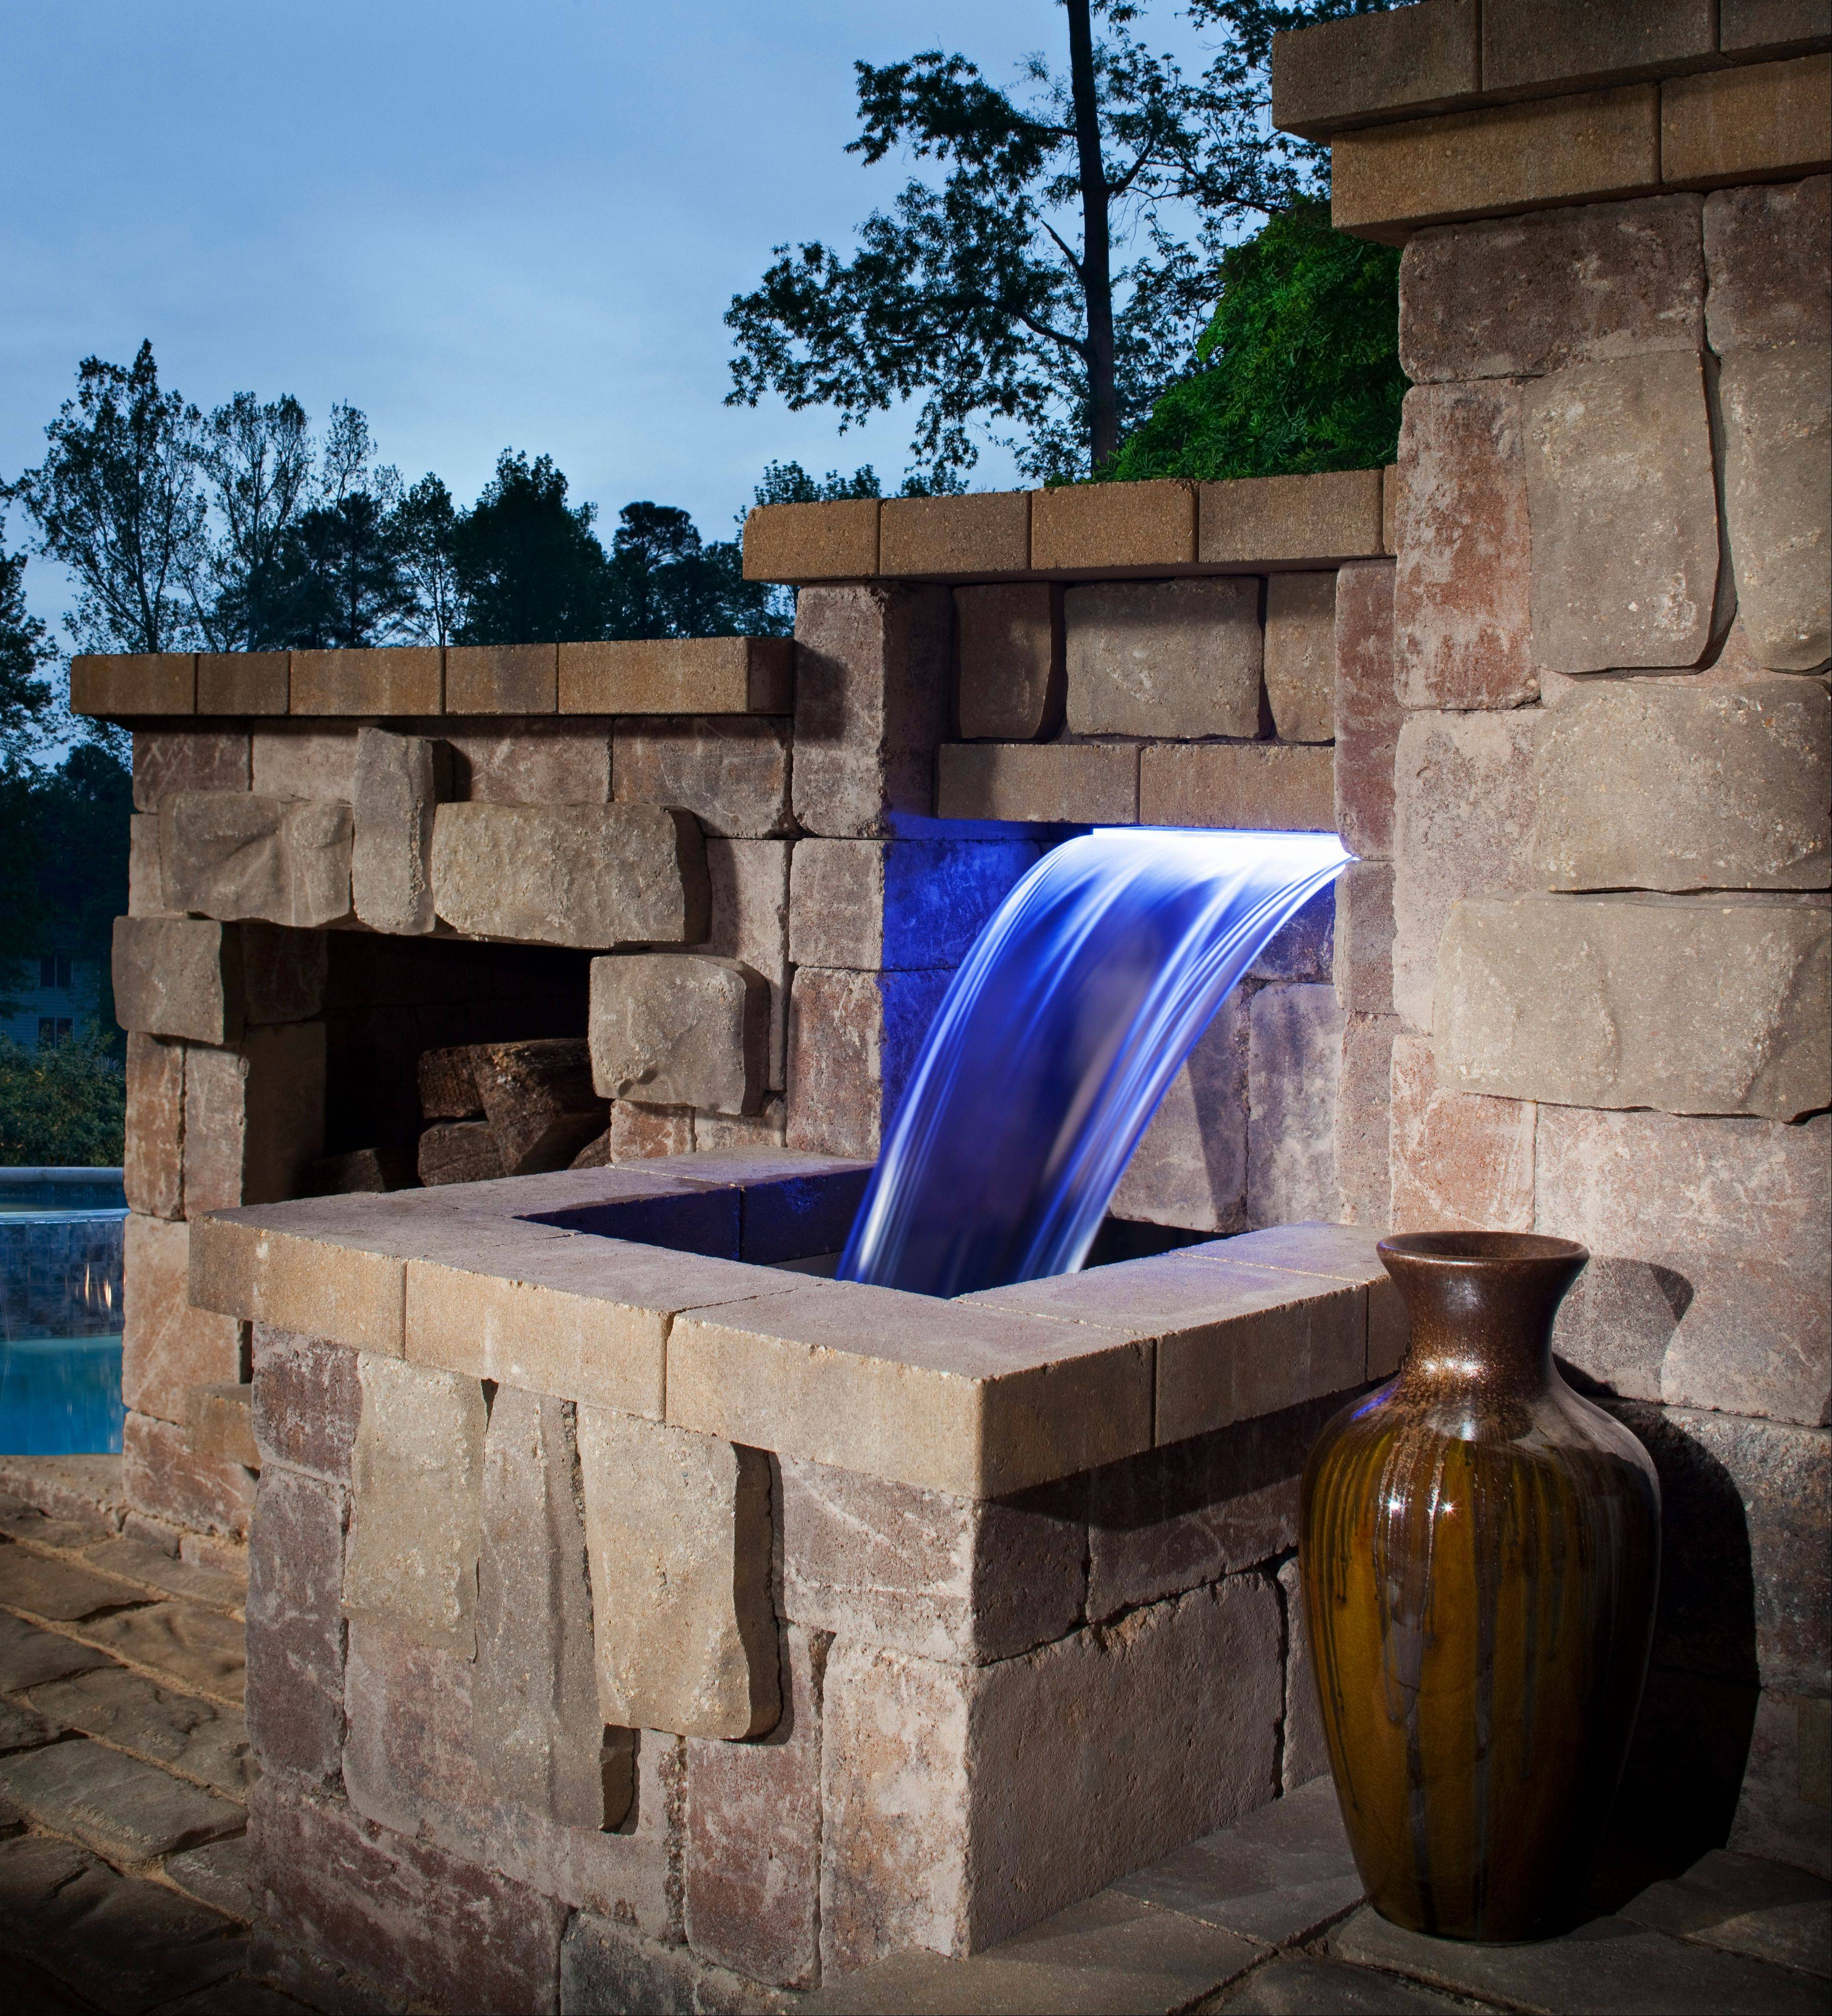 This lighted waterfall is part of a patio feature made using Belgard blocks and pavers.